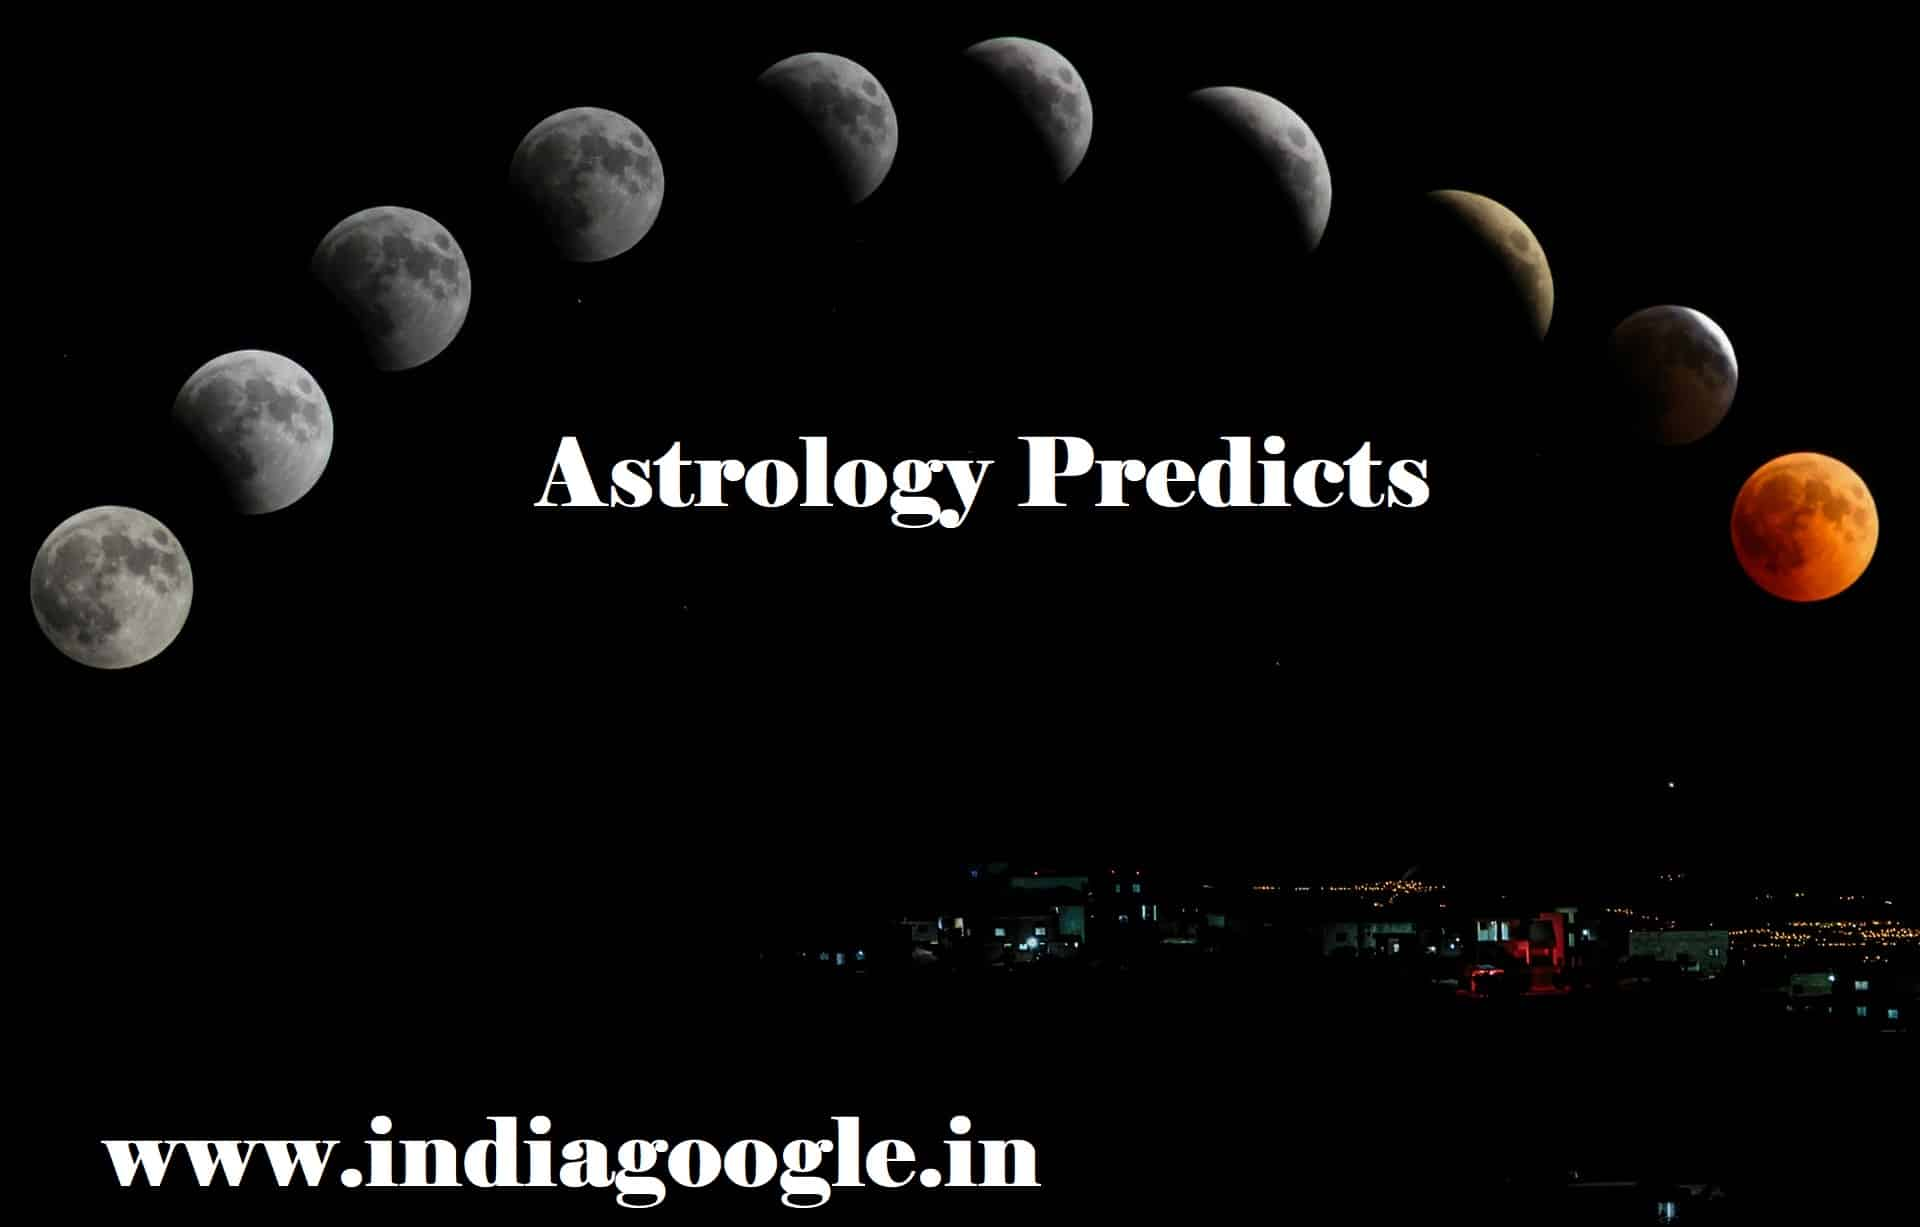 Astrology 2019 | 12 signs Astrology